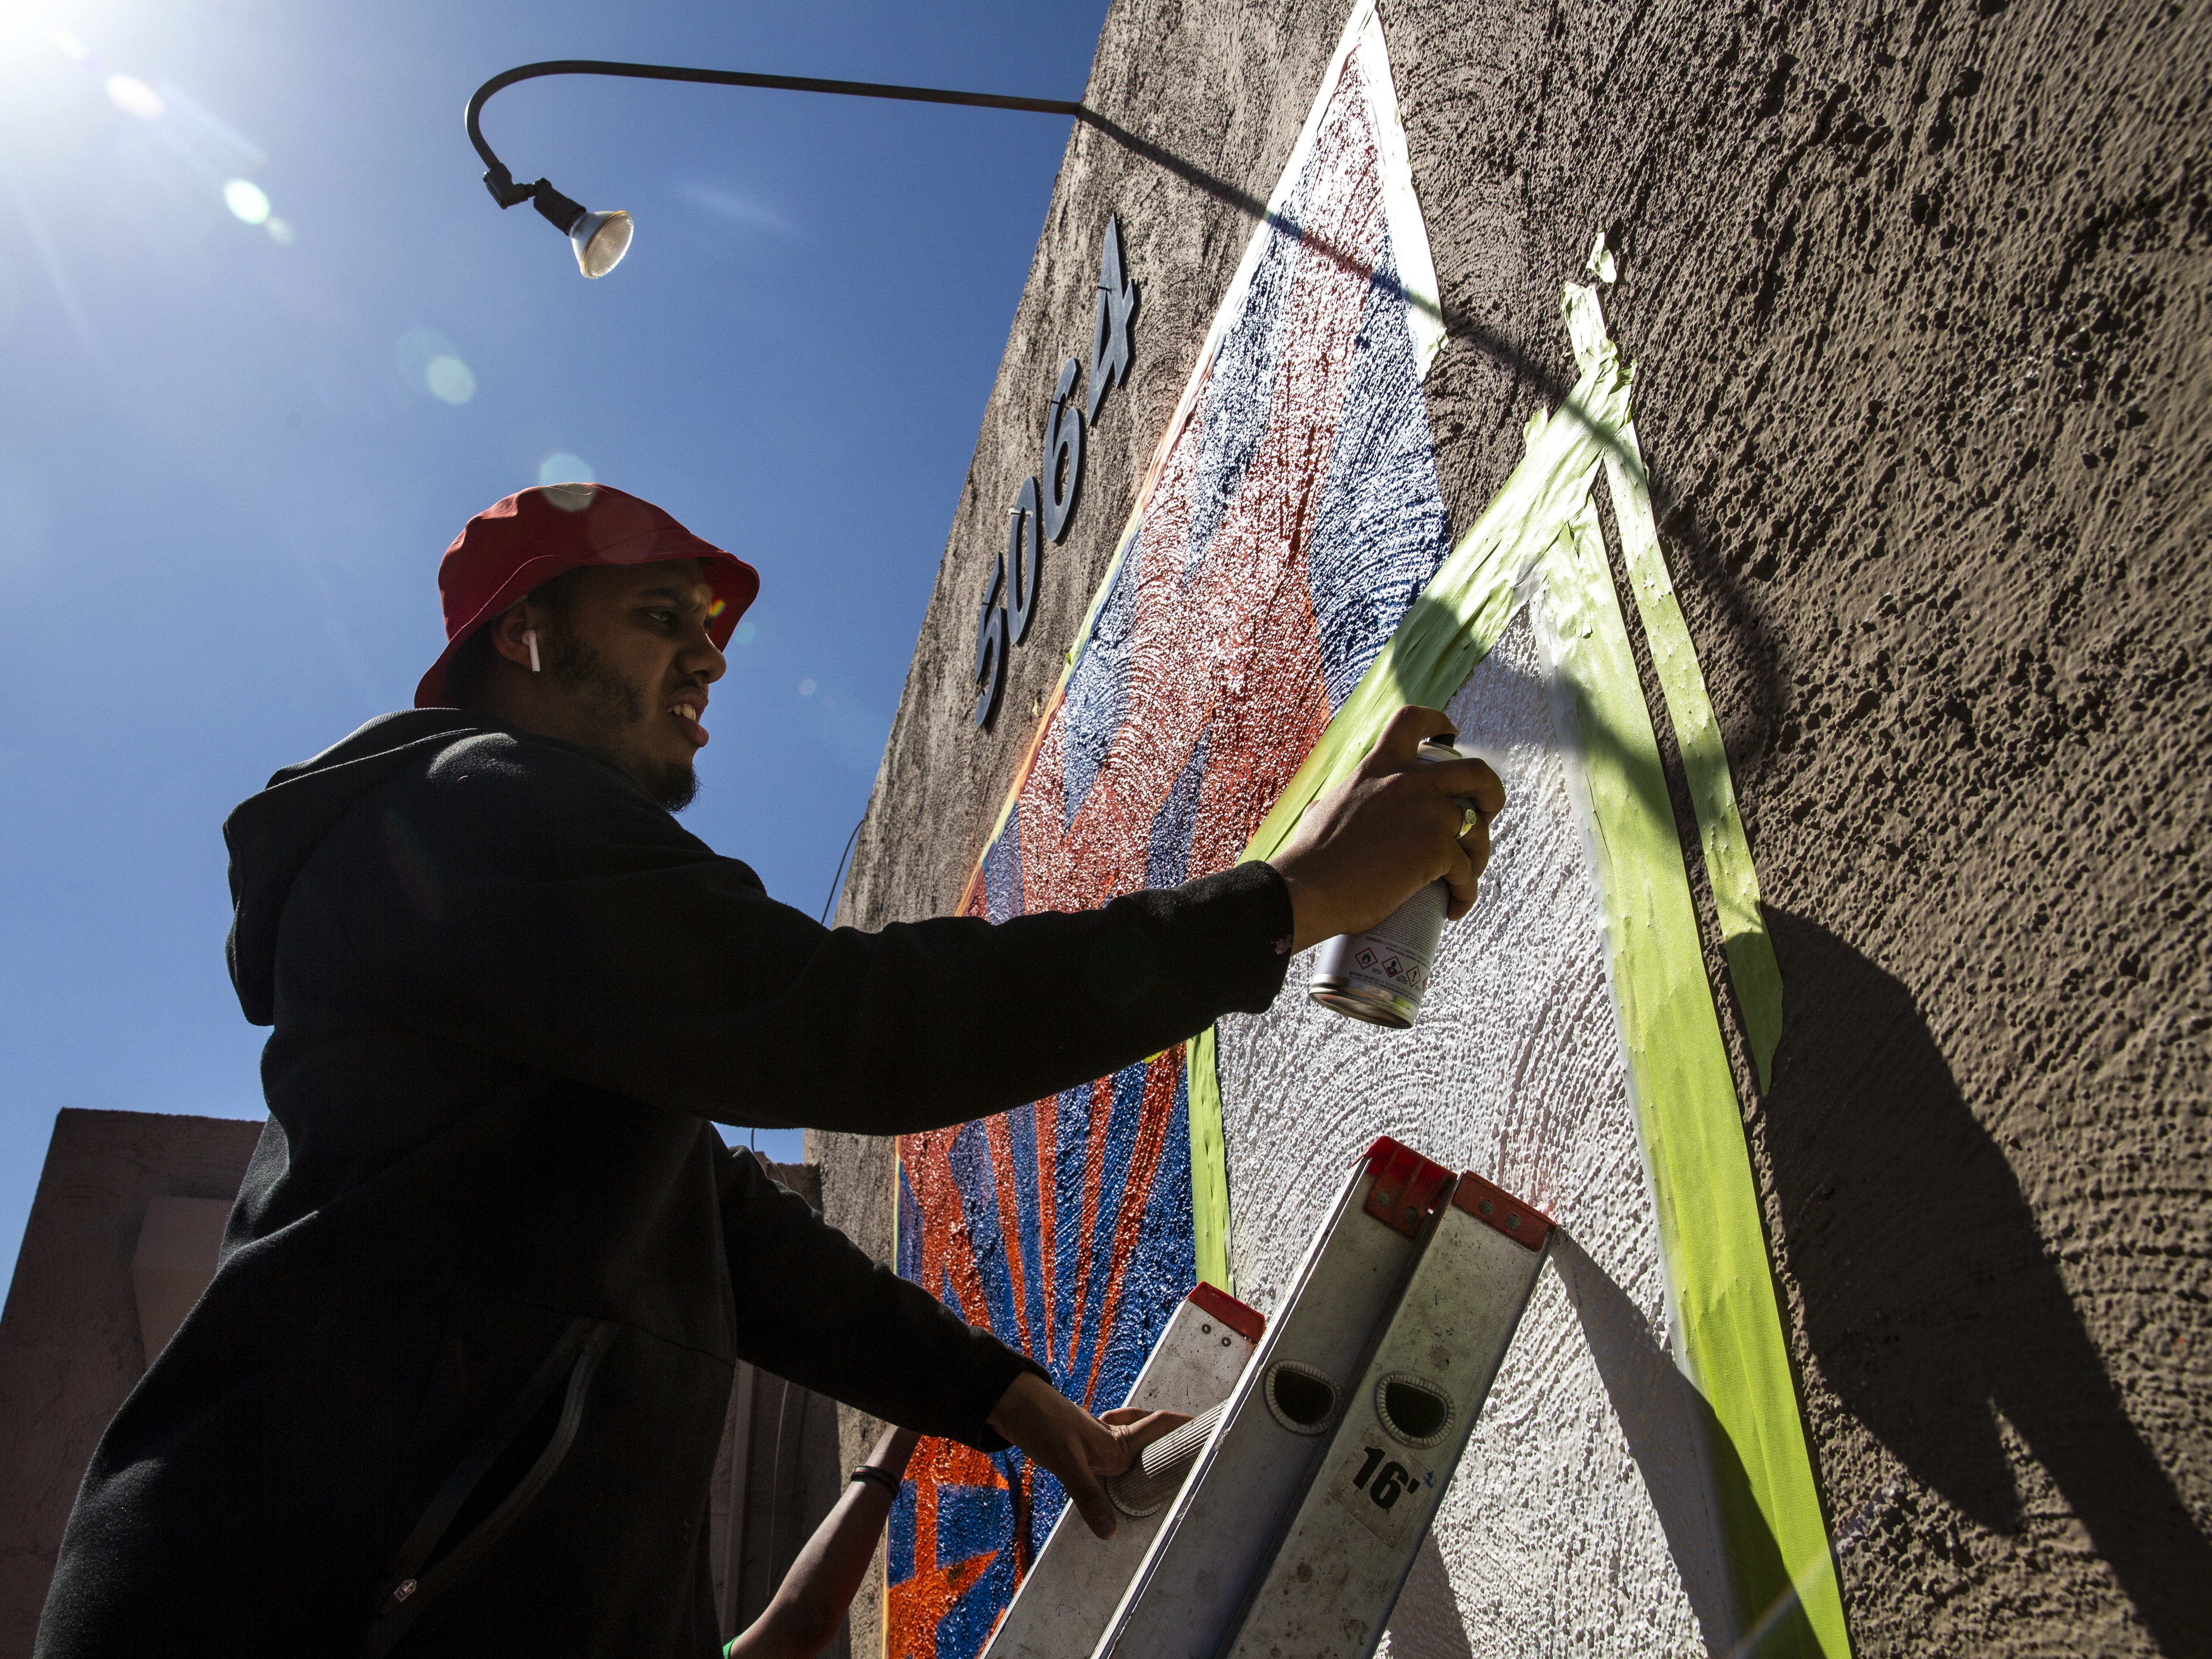 Haadi Hussein sprays white paint on a mural in Phoenix, Ariz. on March 31, 2019.